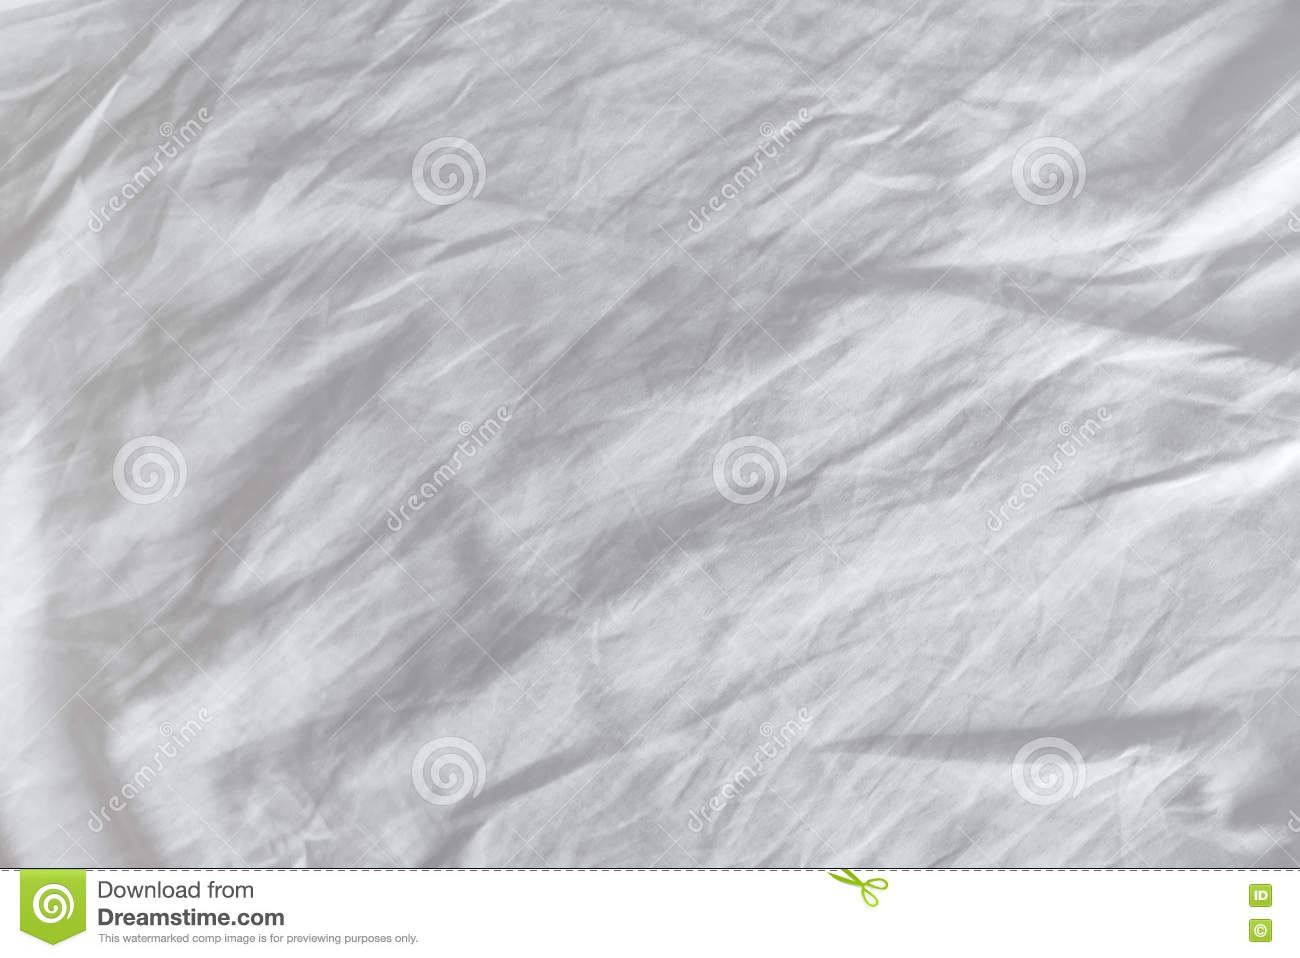 Rumpled bed sheet - Wrinkles On Crumpled White Cotton Sheets Textire Stock Photo